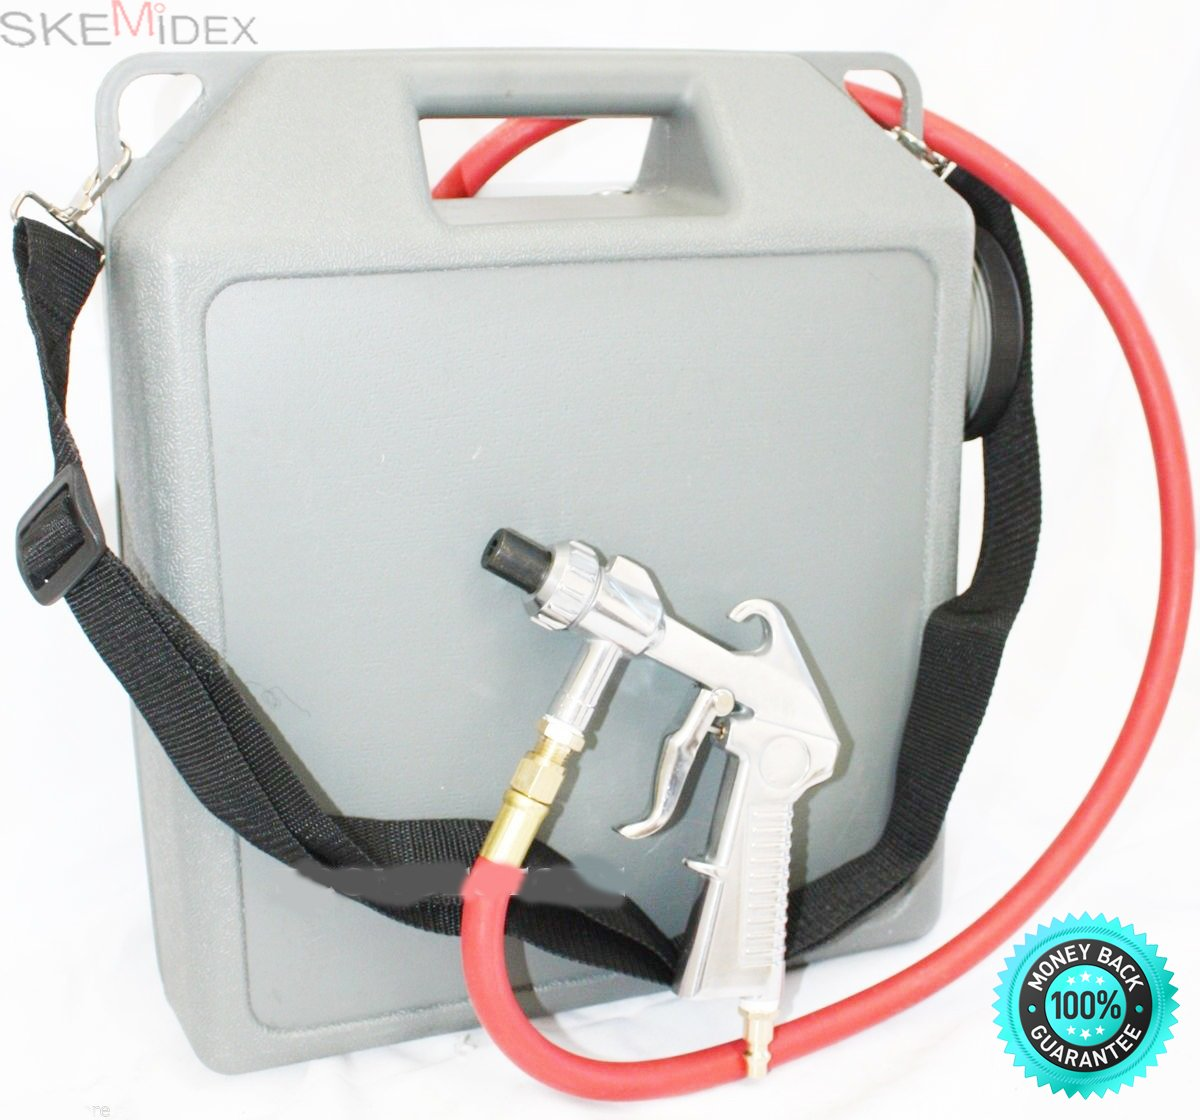 SKEMiDEX---PORTABLE AIR SAND BLASTER AIR CLEANER CLEANING TOOL WITH HOSE AND GUN NEW. Hardened steel nozzle & shoulder strap included Works with glass beads, sand, and aluminum oxide